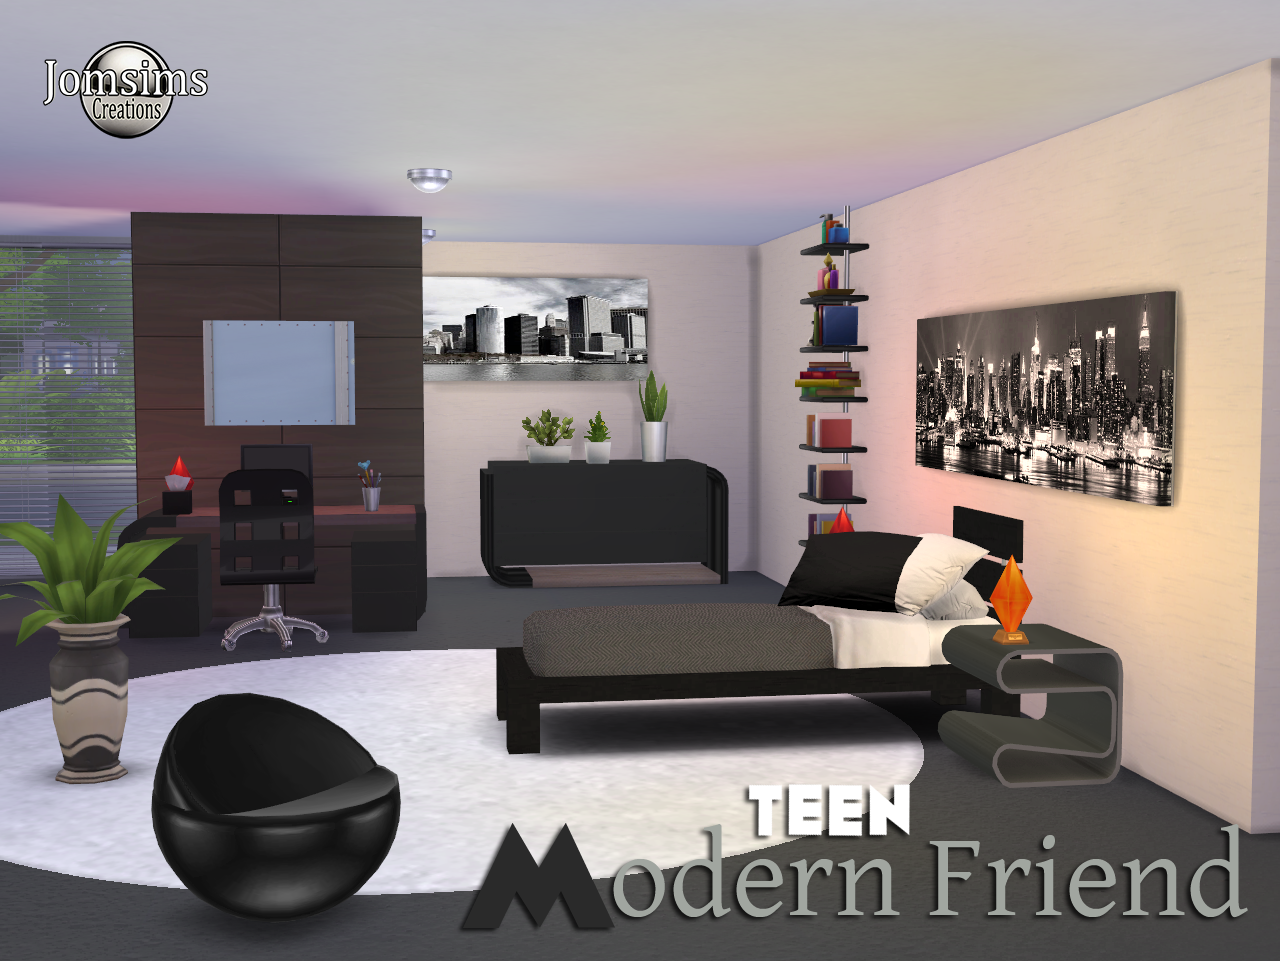 My sims 4 blog modern friend teen bedroom set by jomsims for Bedroom designs sims 4